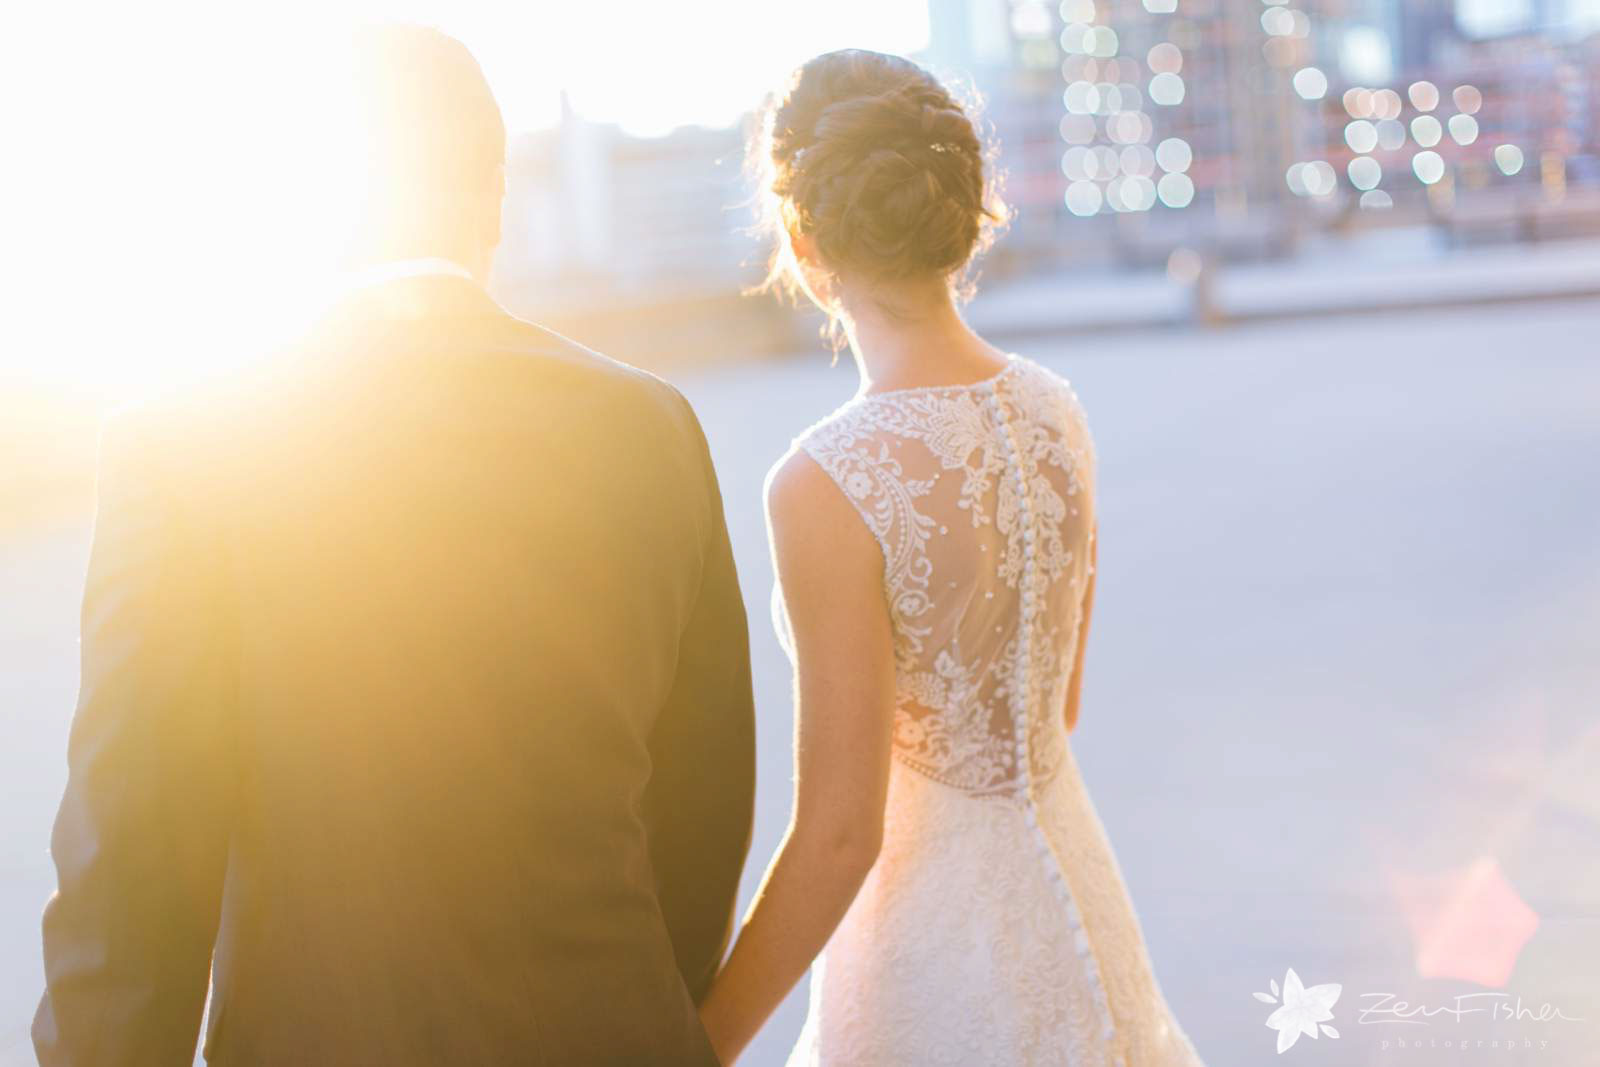 bride and groom holding hands and walking during sunset with ethereal light